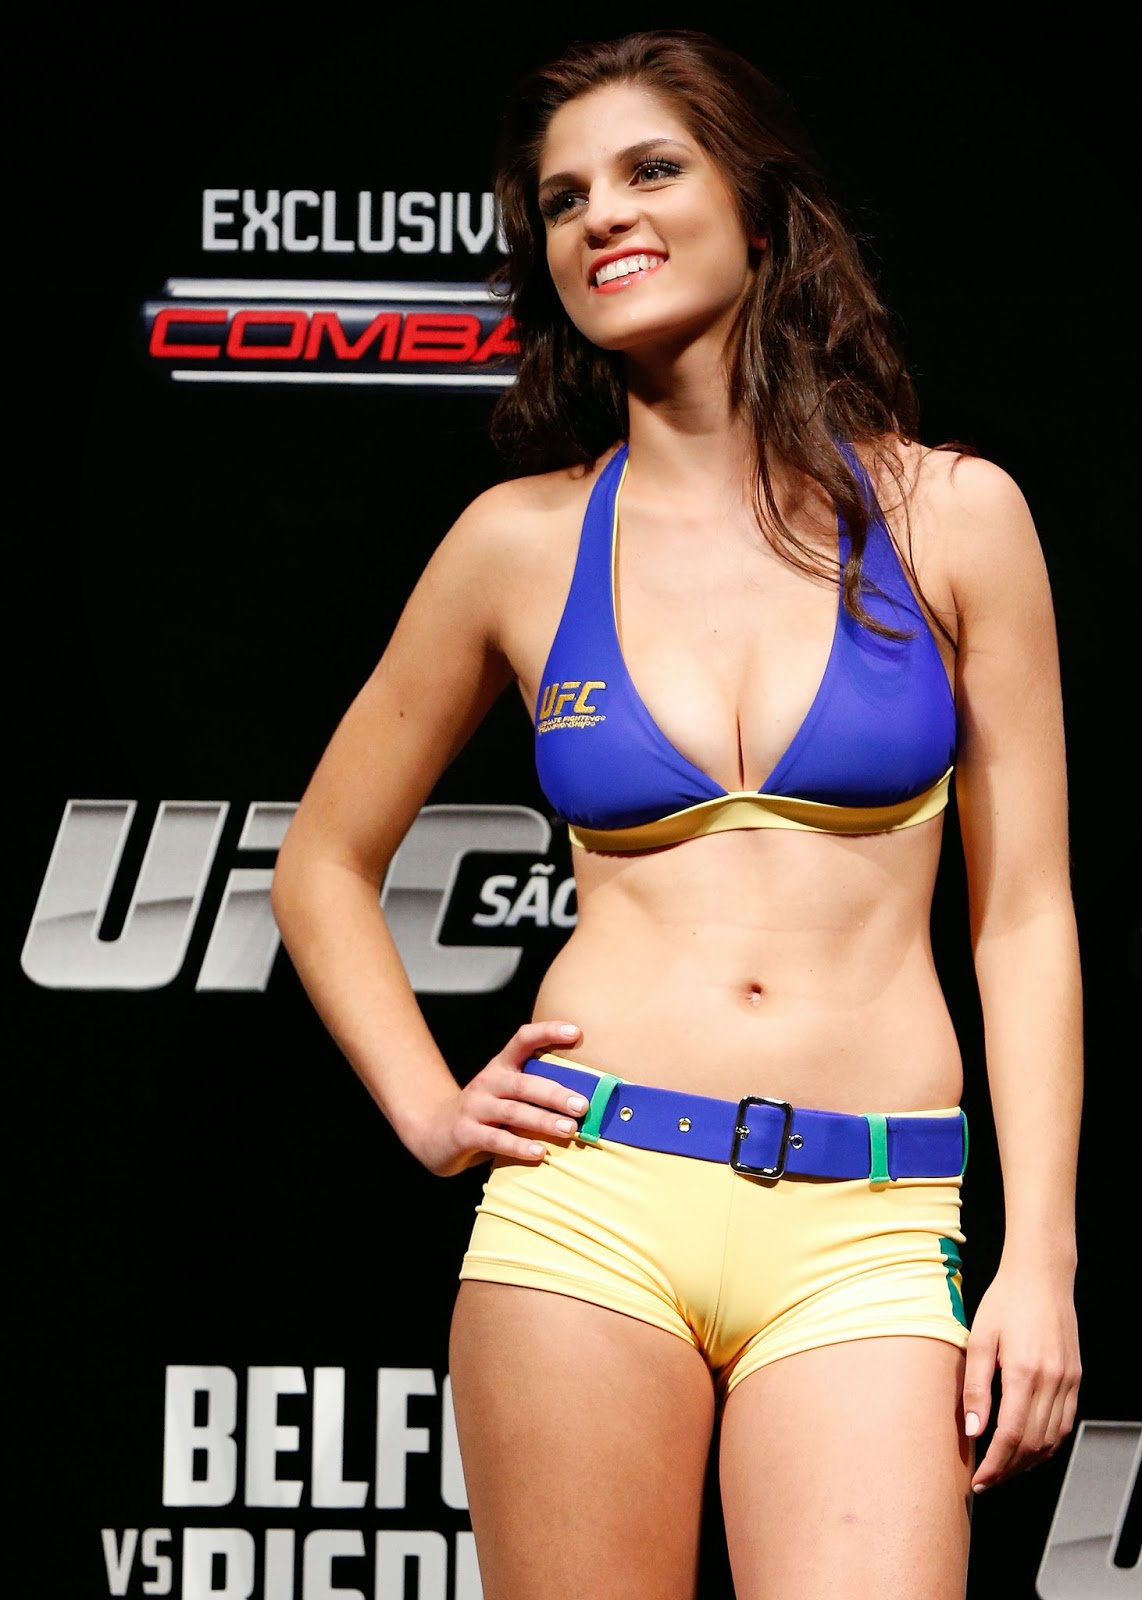 Excellent ufc ring girls apologise, but